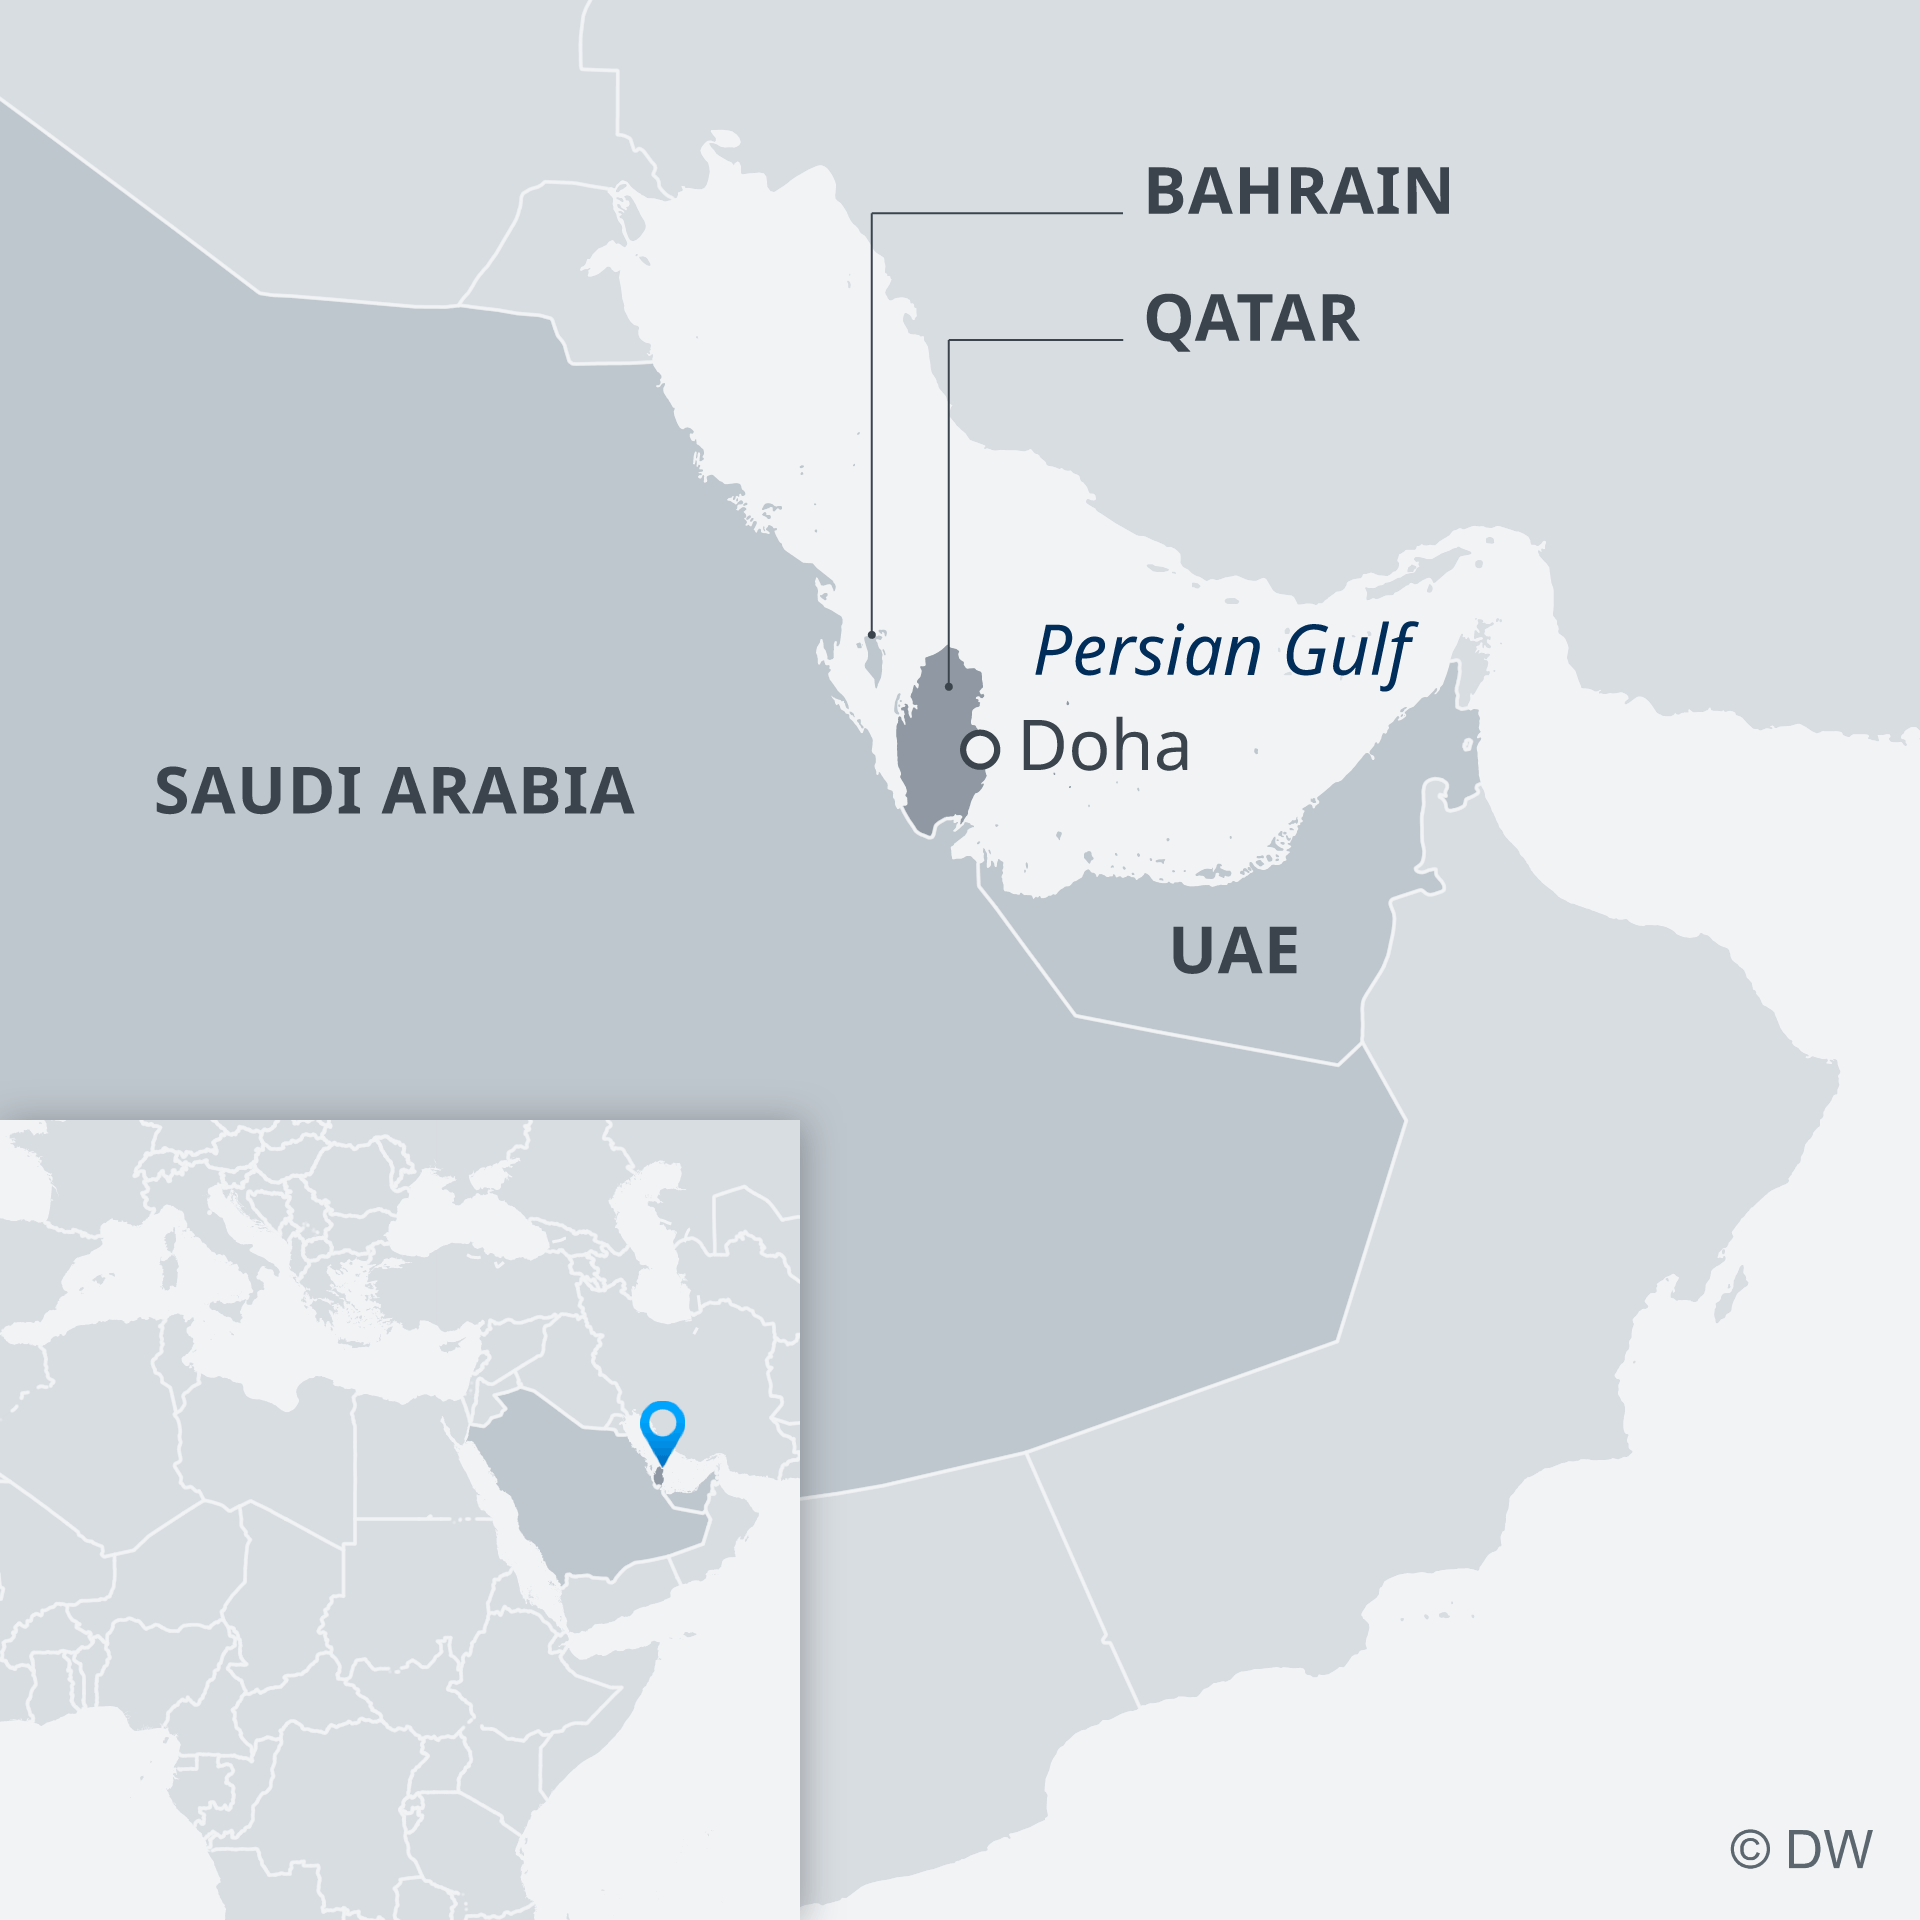 A map showing Bahrain